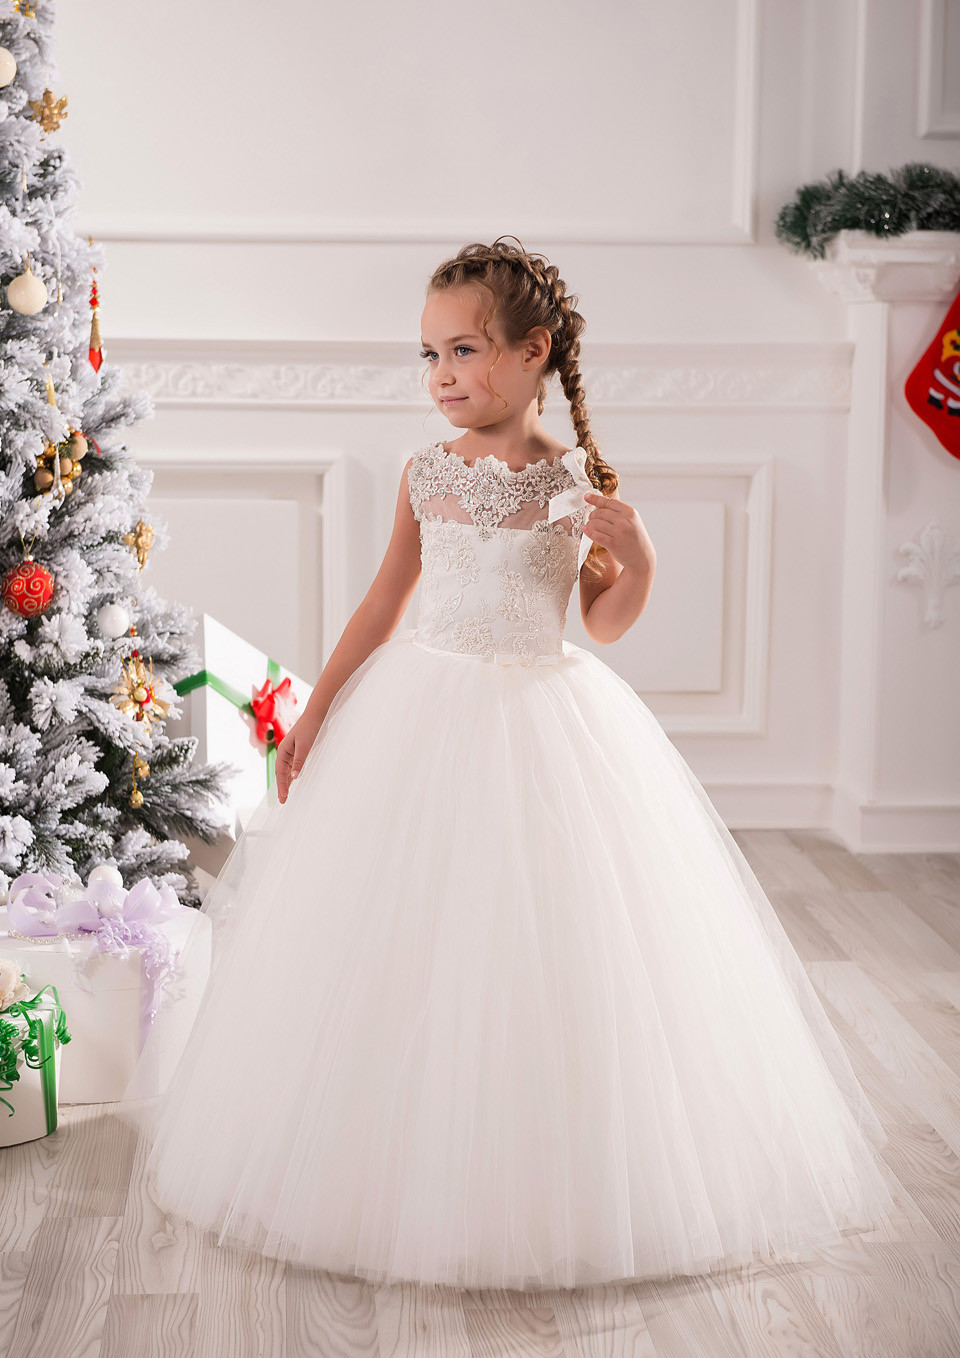 Tutu New White Flower Girl Dress Ball Gowns Ankle Length Appliques Sleeveless O-neck Lace Up Vestidos Primera Comunion 2016 4pcs new for ball uff bes m18mg noc80b s04g